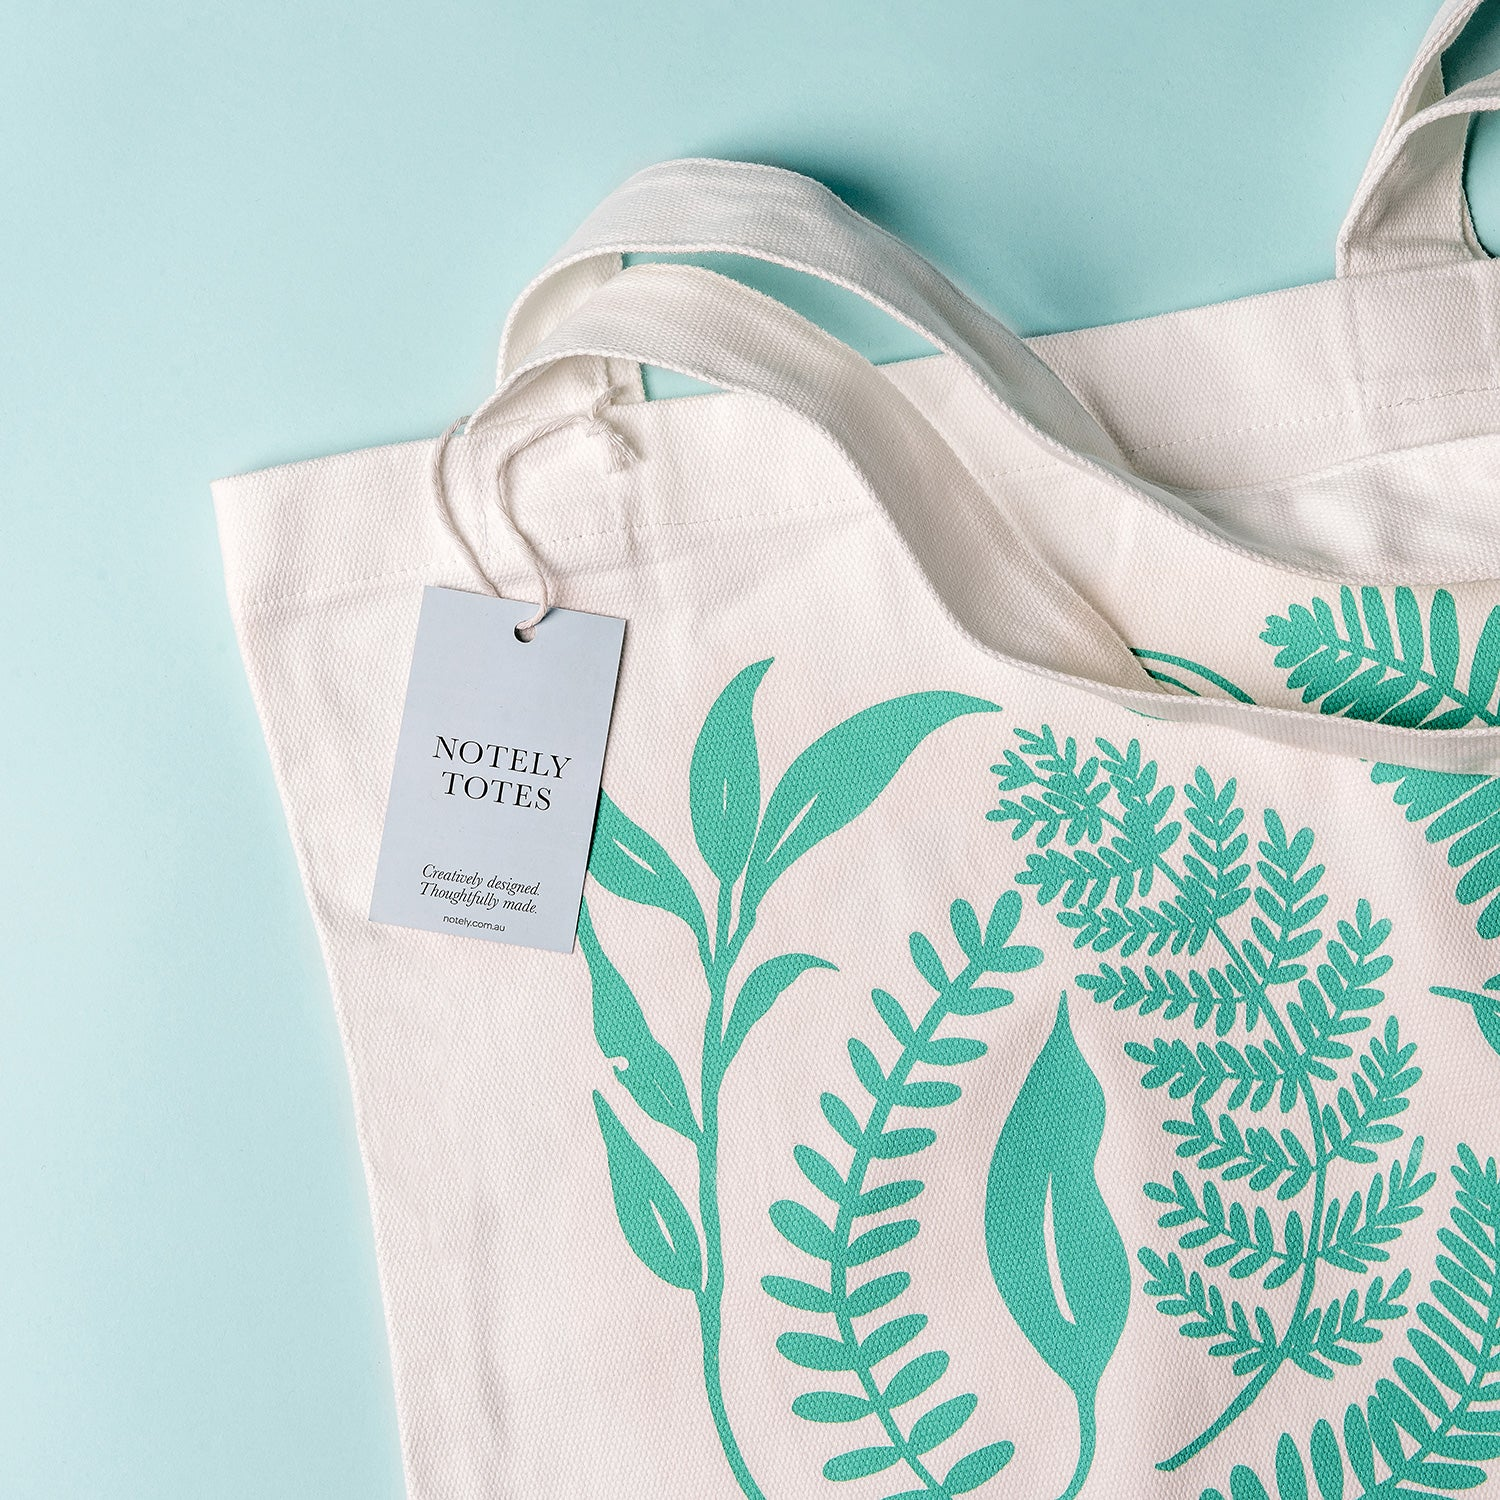 Leafy Tote – 100% Cotton Canvas Bag